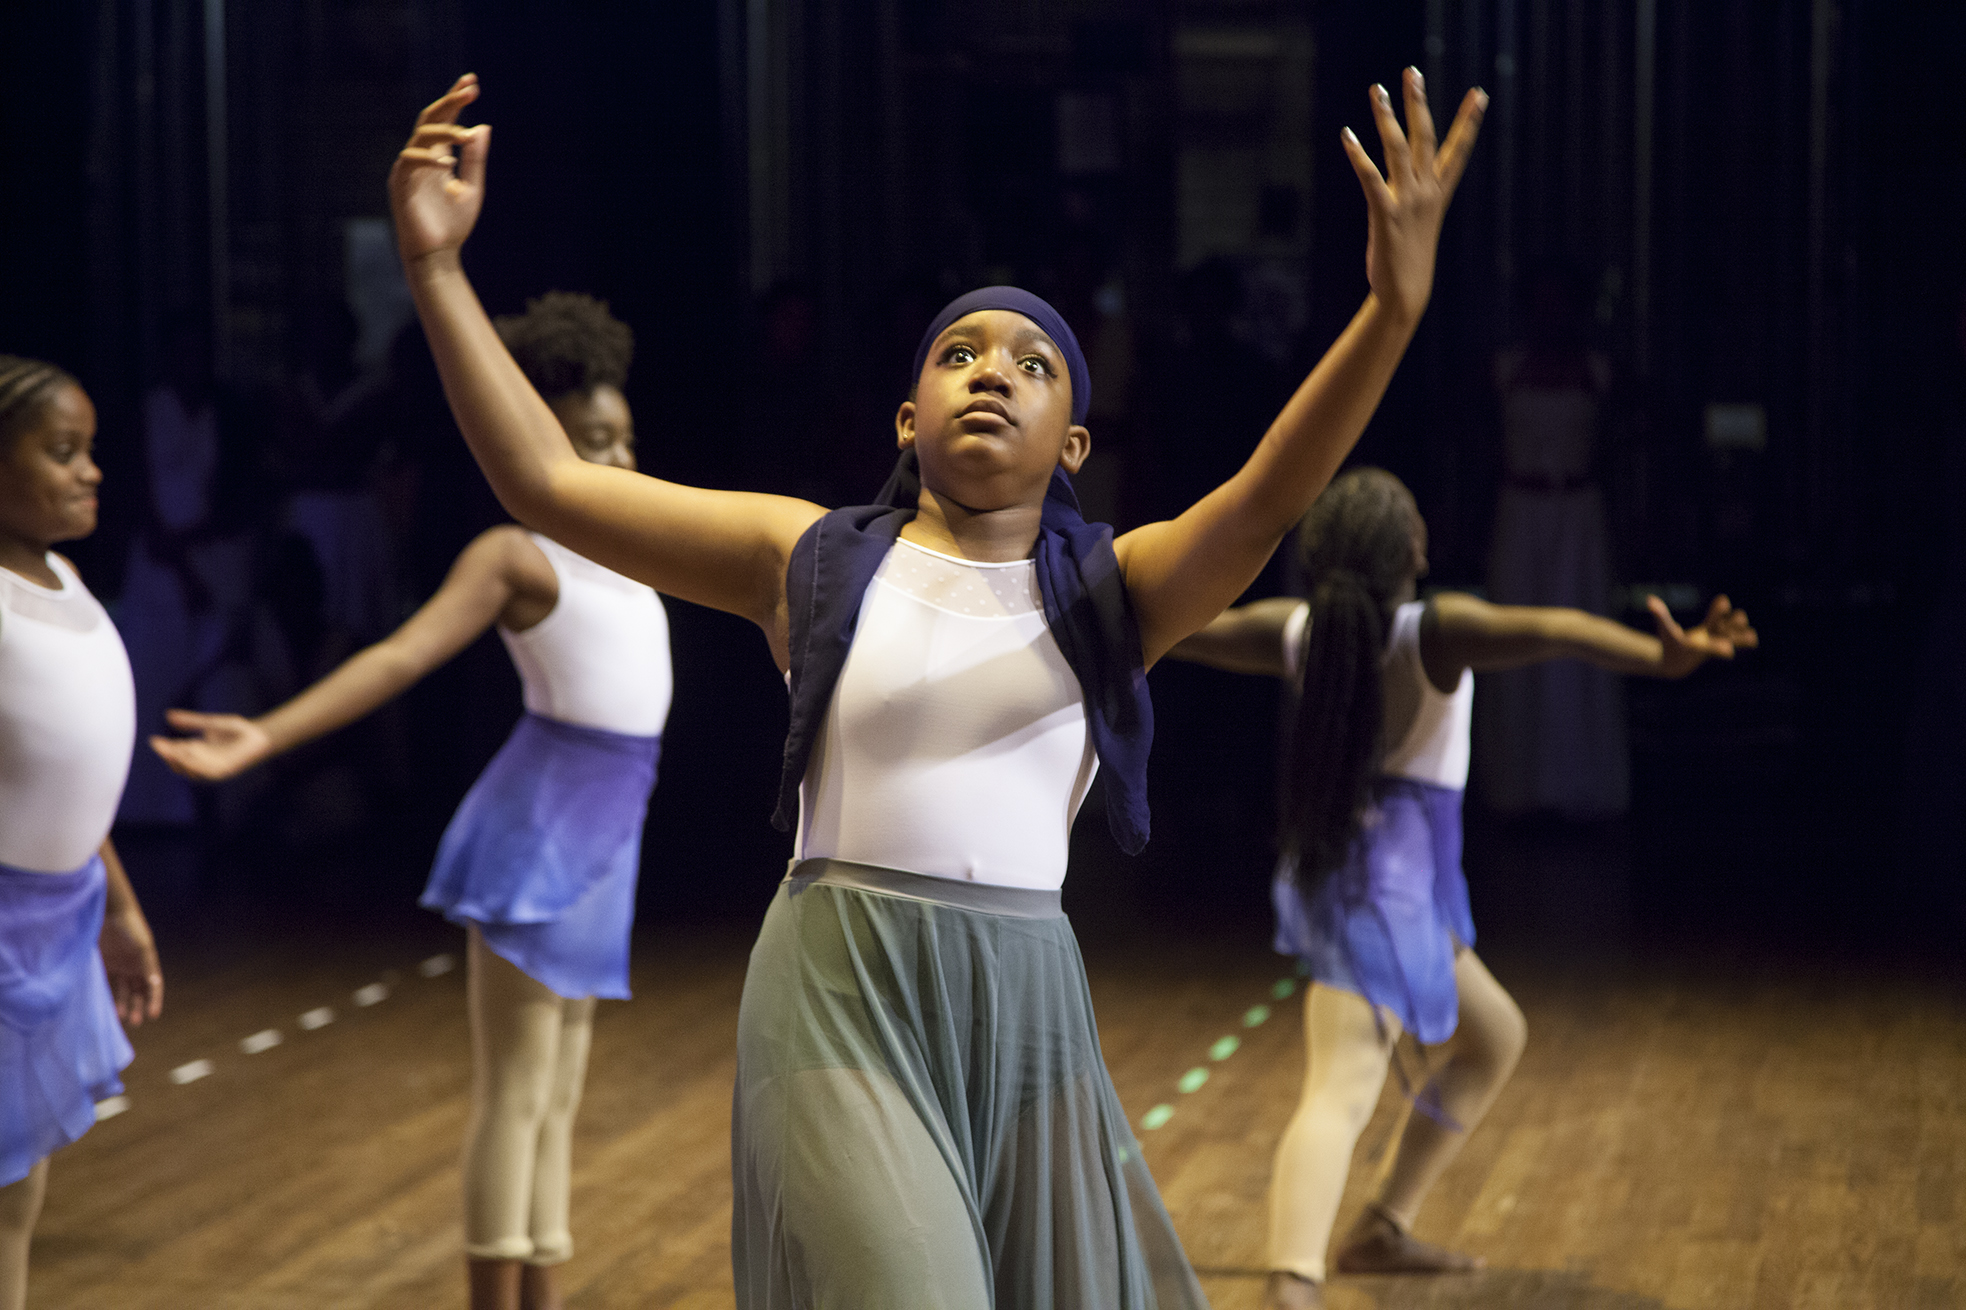 The Gift of Life: Restoration Arts Dancers  Perform So Sub-Sahara Children Might Live